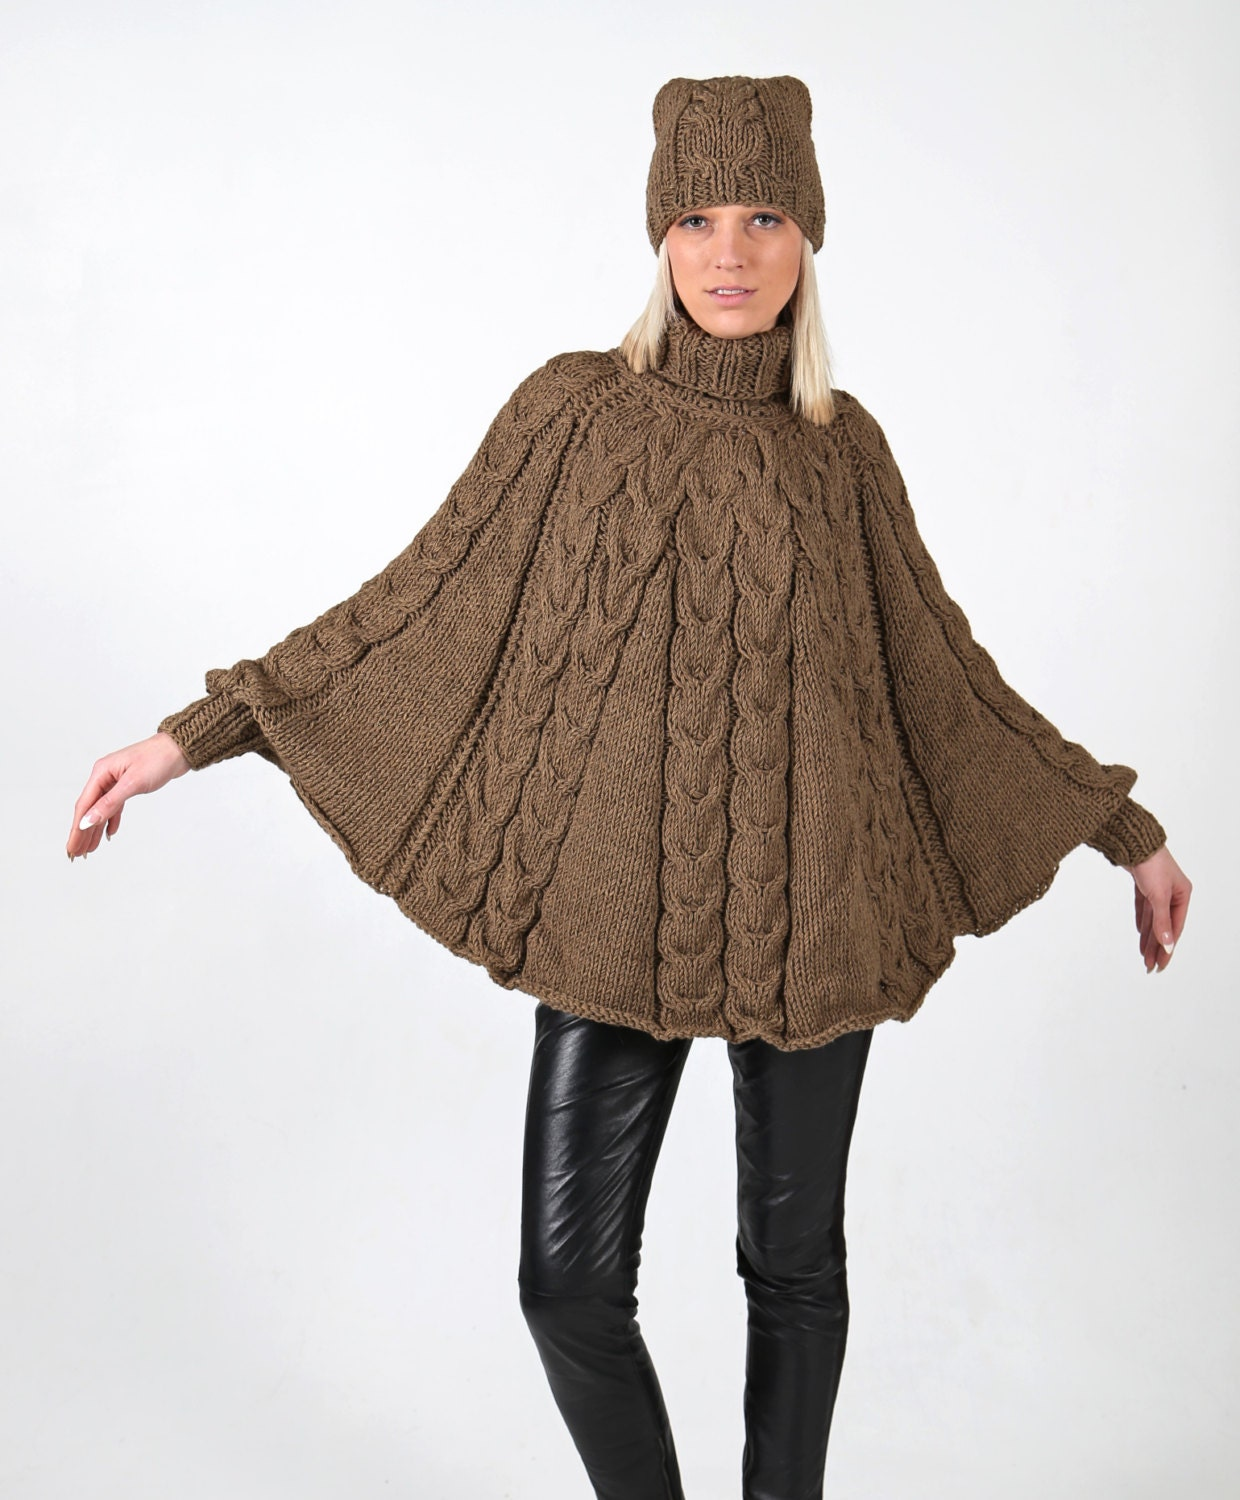 Old Fashioned Knit Poncho Patterns Images - Blanket Knitting Pattern ...